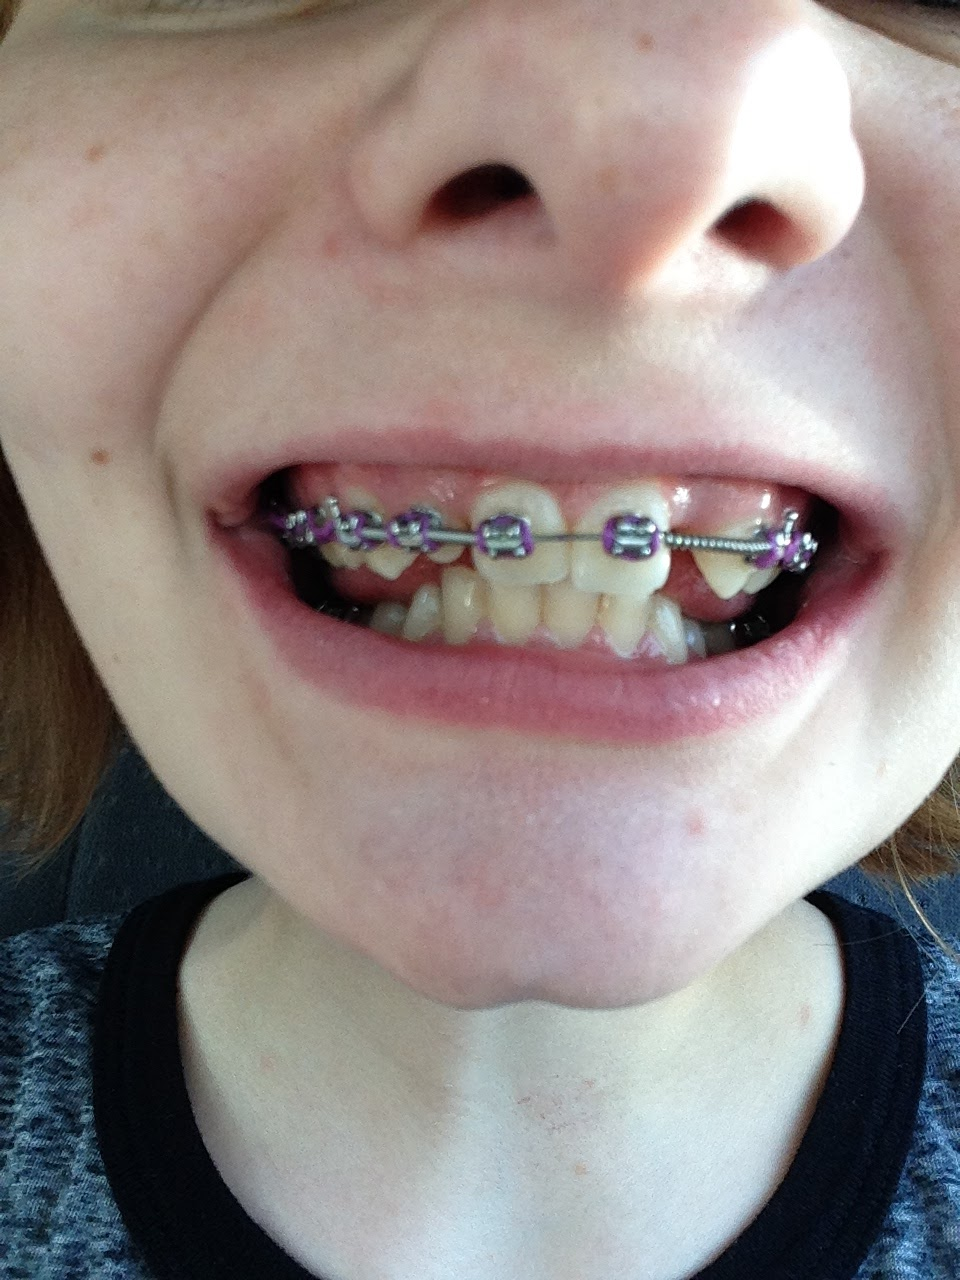 Jaw Surgery Experience and Recovery : Introduction